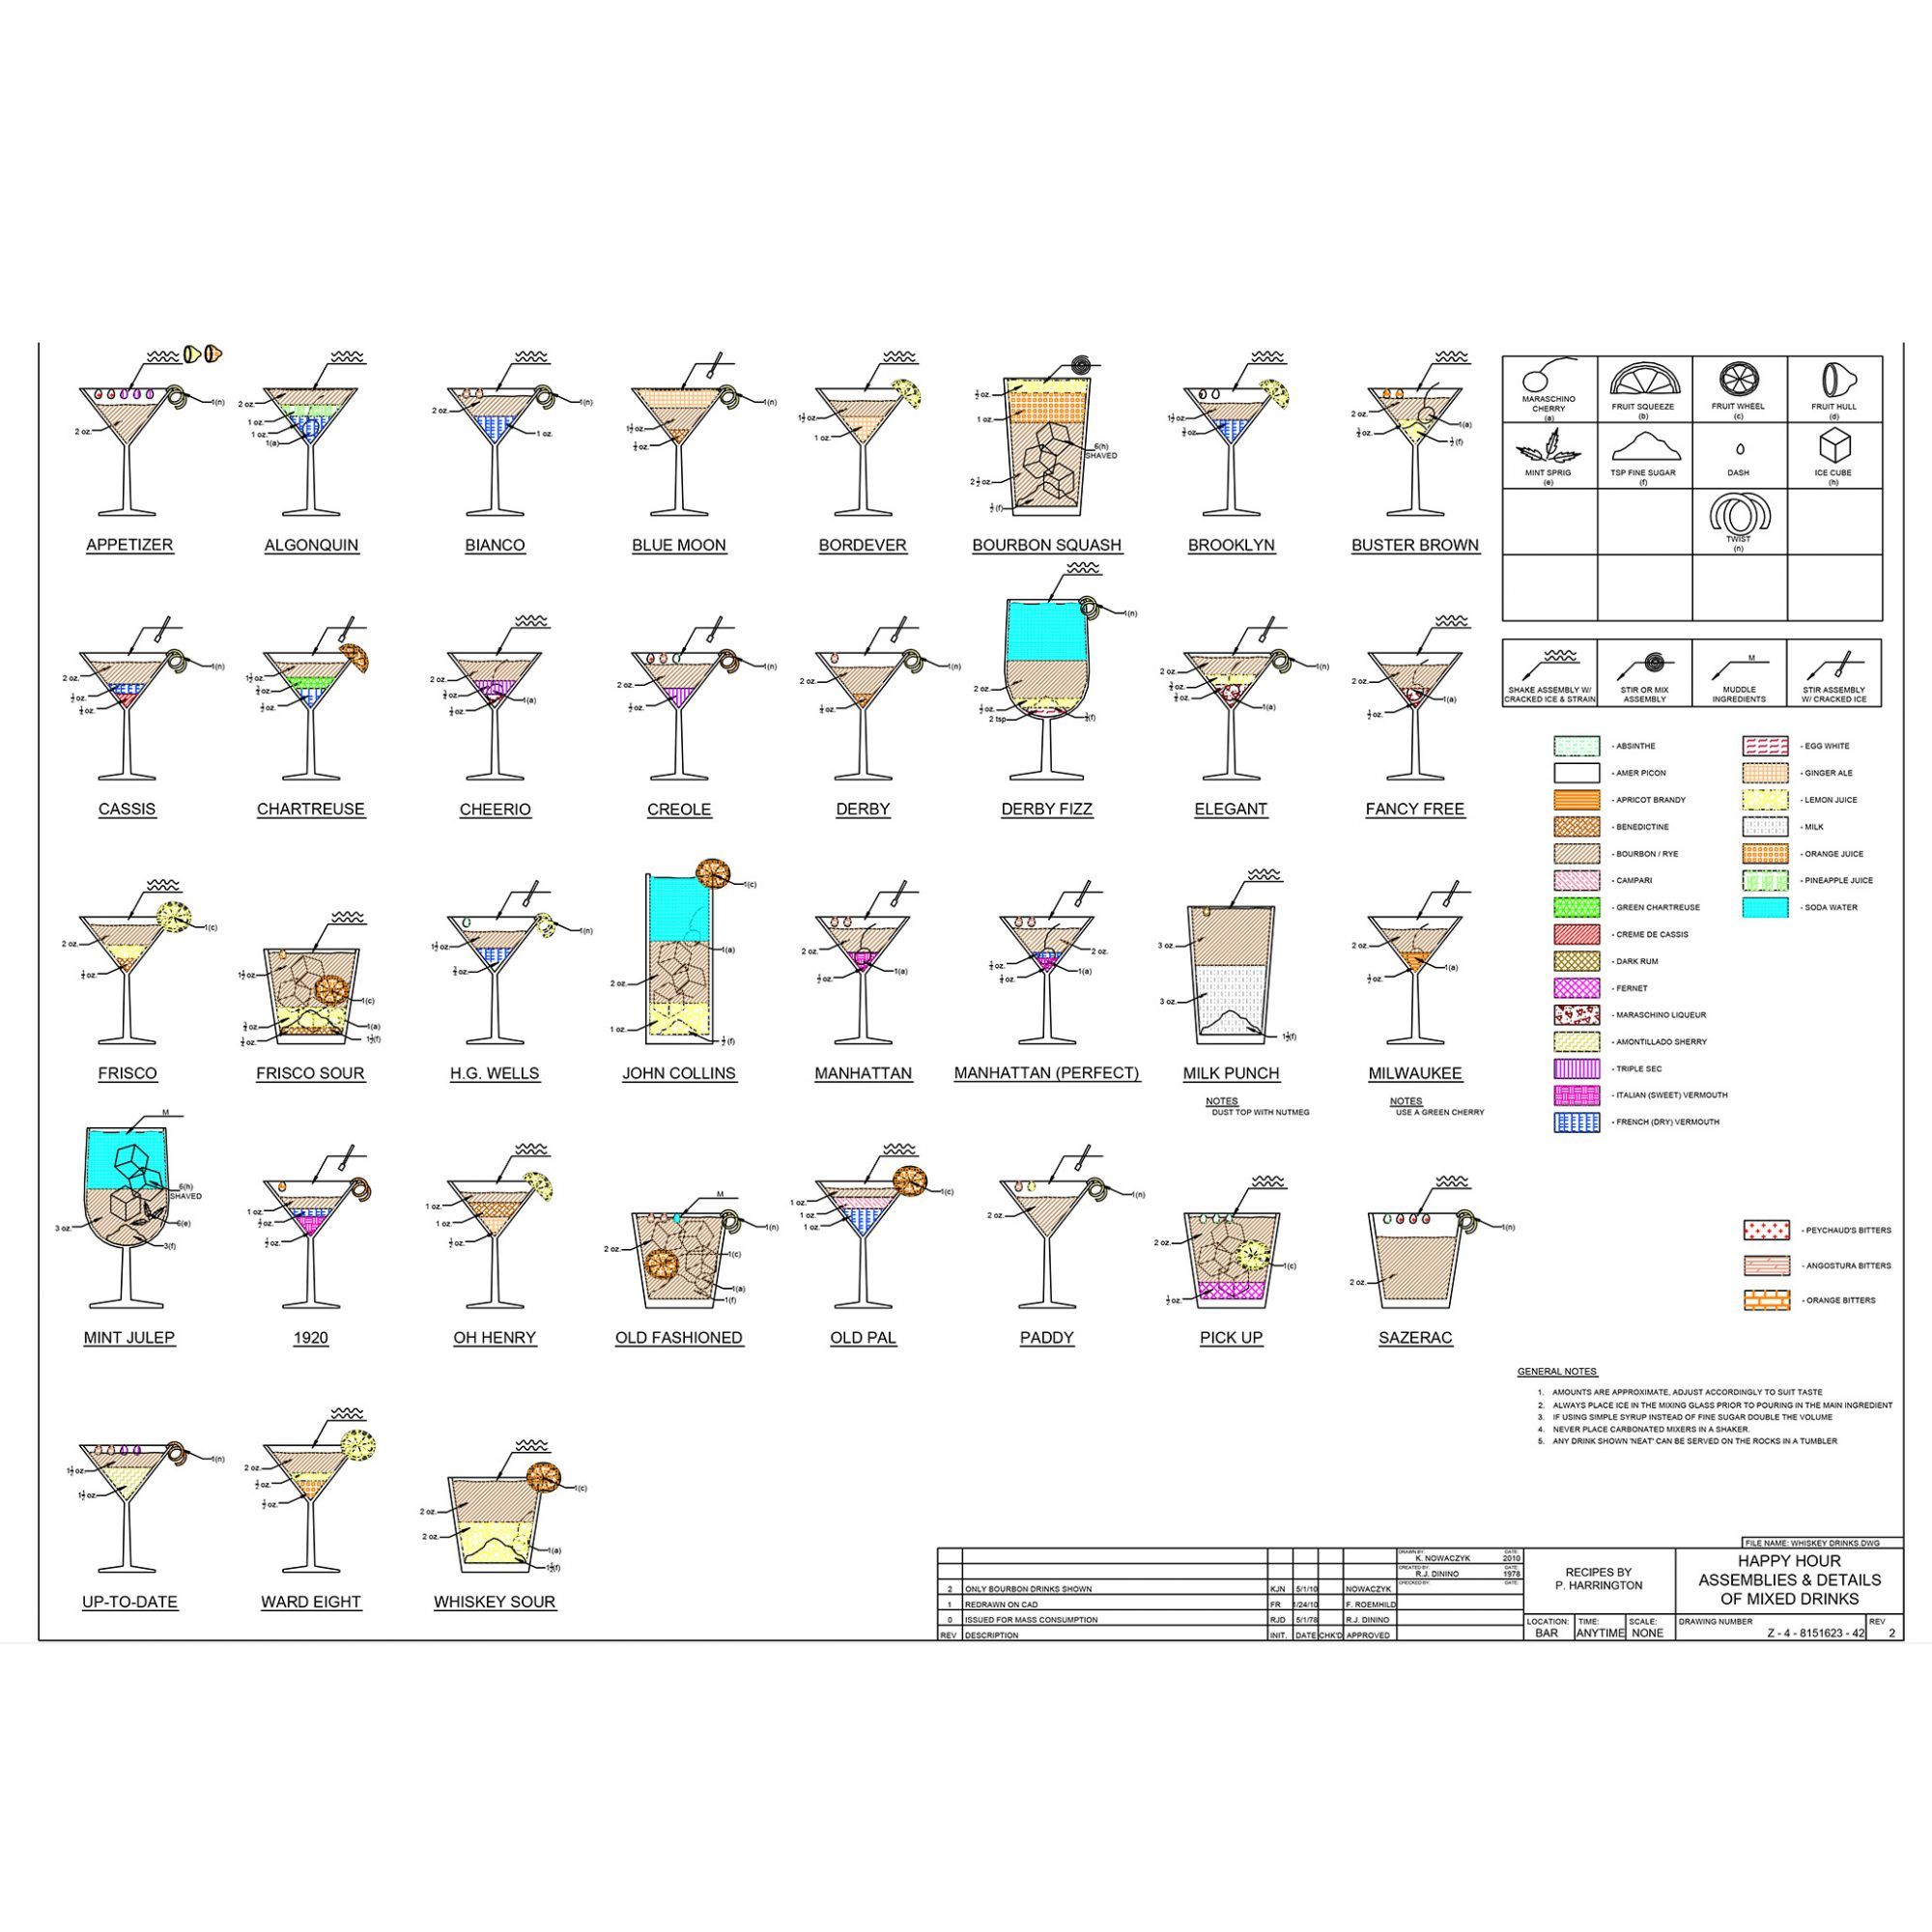 Look at Engineering Schematics for More Than 70 Different Cocktails